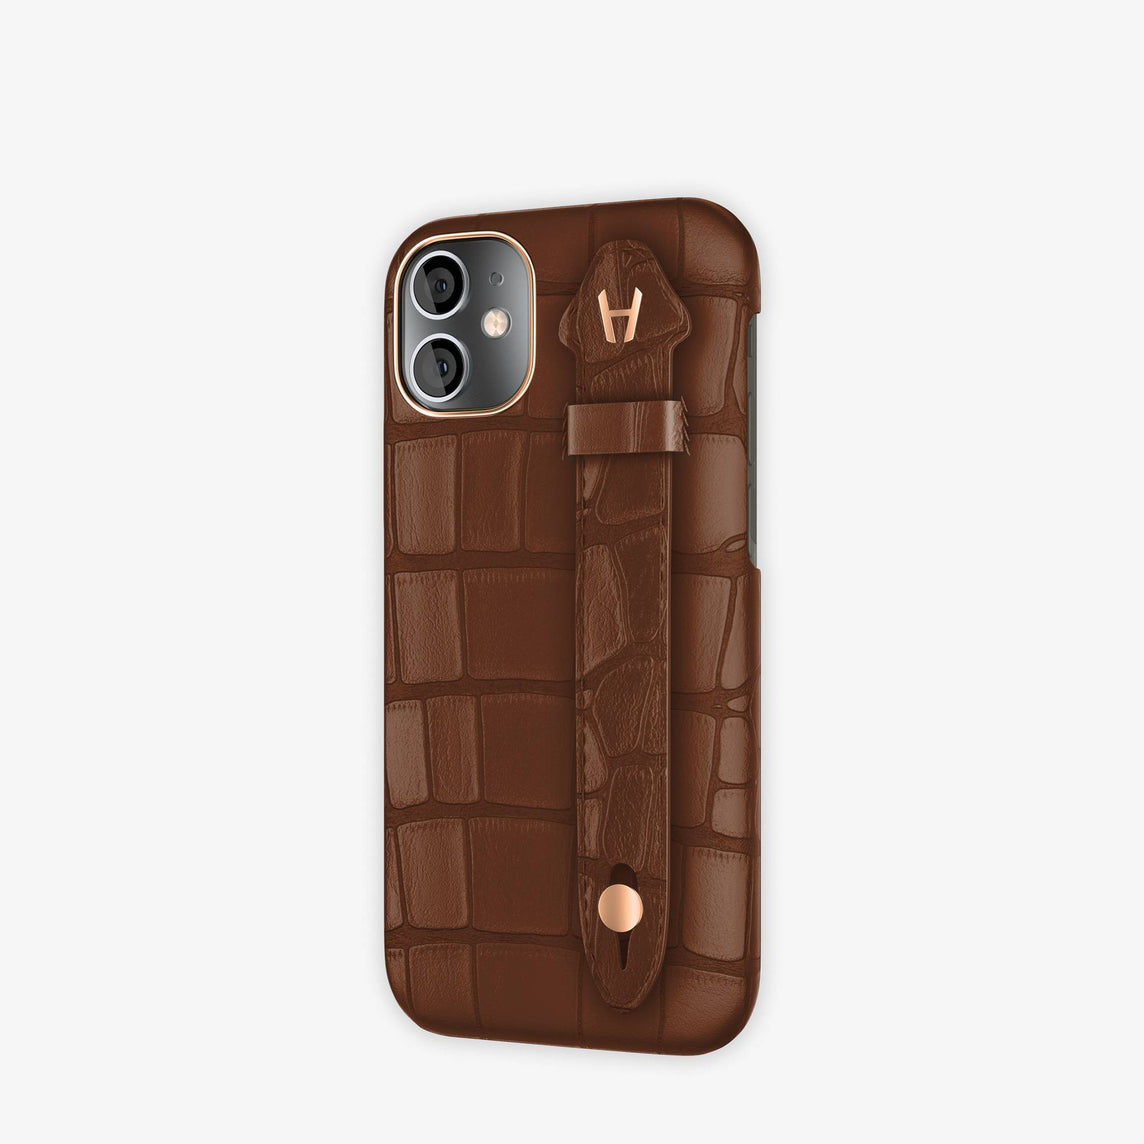 Alligator Side Finger Case iPhone 12 Mini | Brown Chocolat/Brown Chocolat -Rose Gold